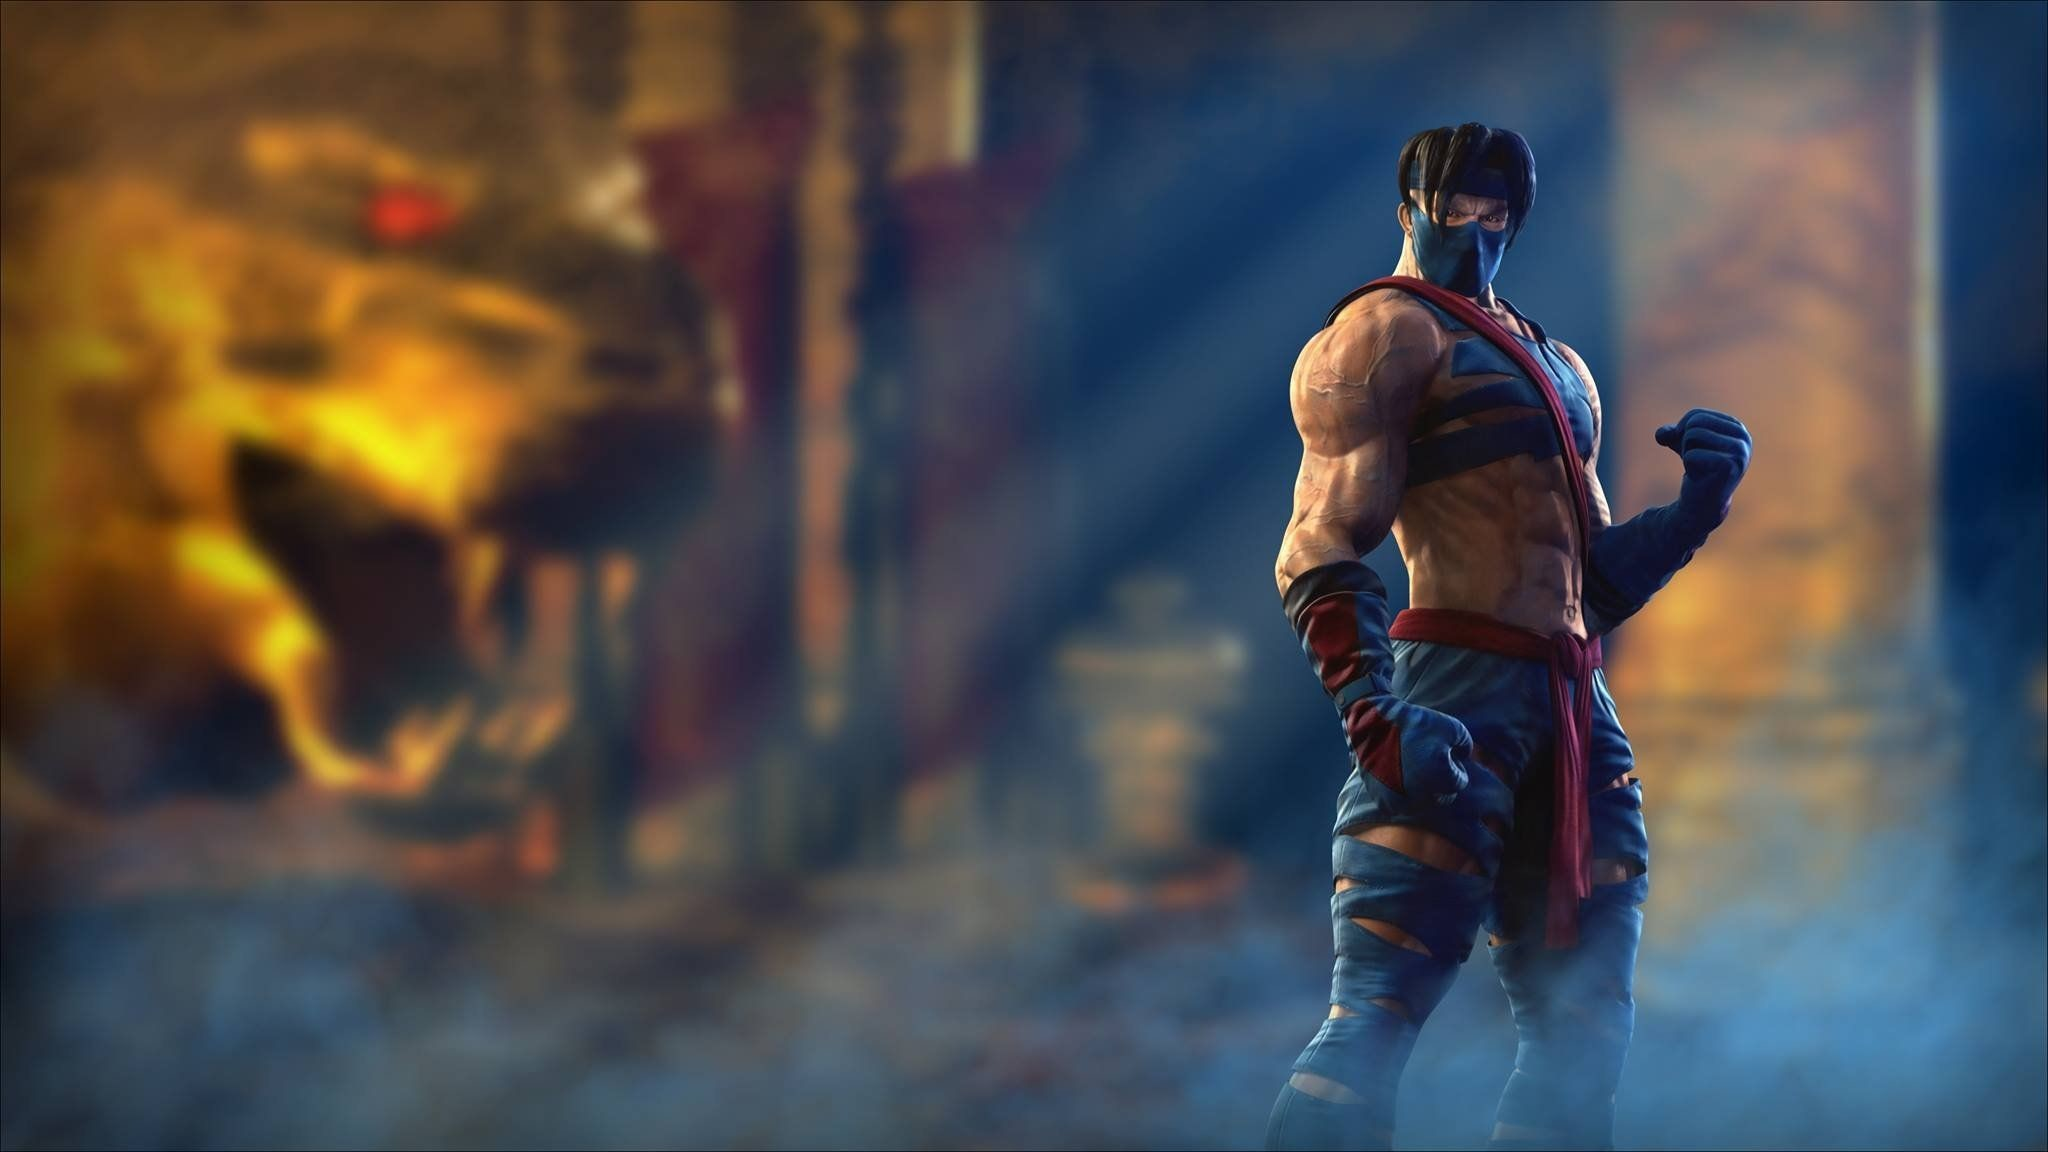 2048x1152 KILLER INSTINCT fighting fantasy game game (32) wallpaper .